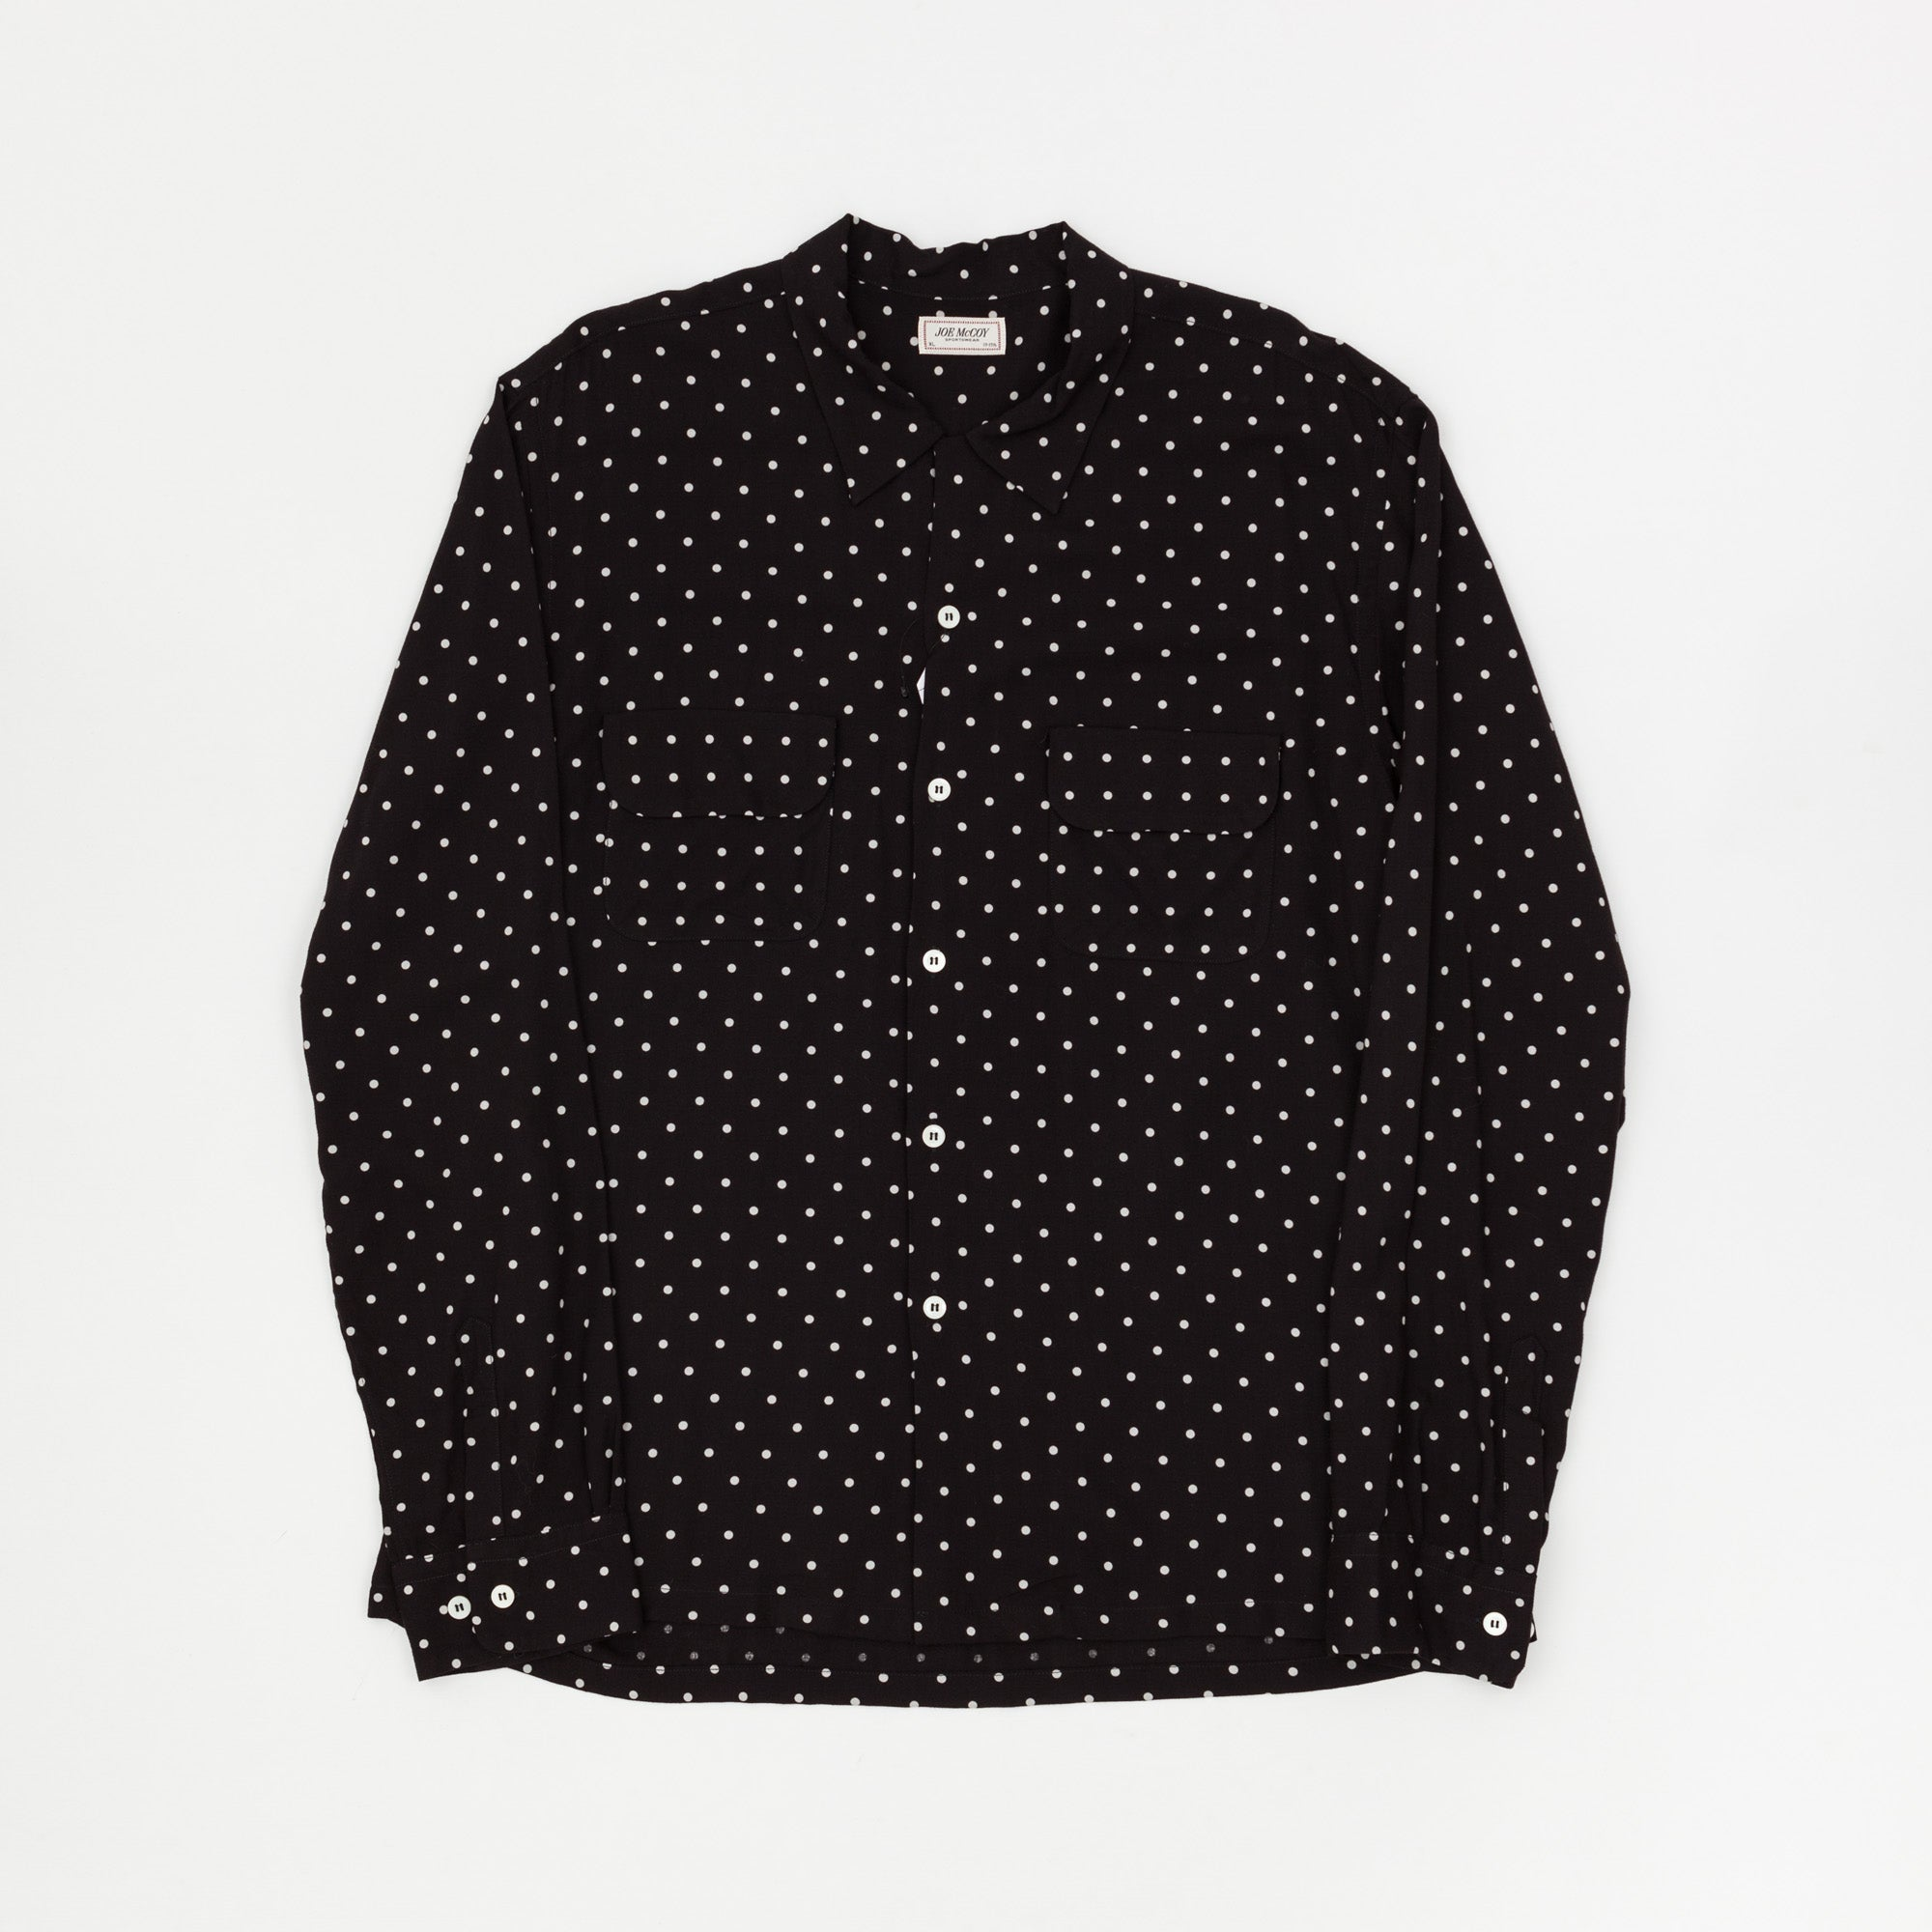 The Real McCoy's Polka Dot Rayon Shirt